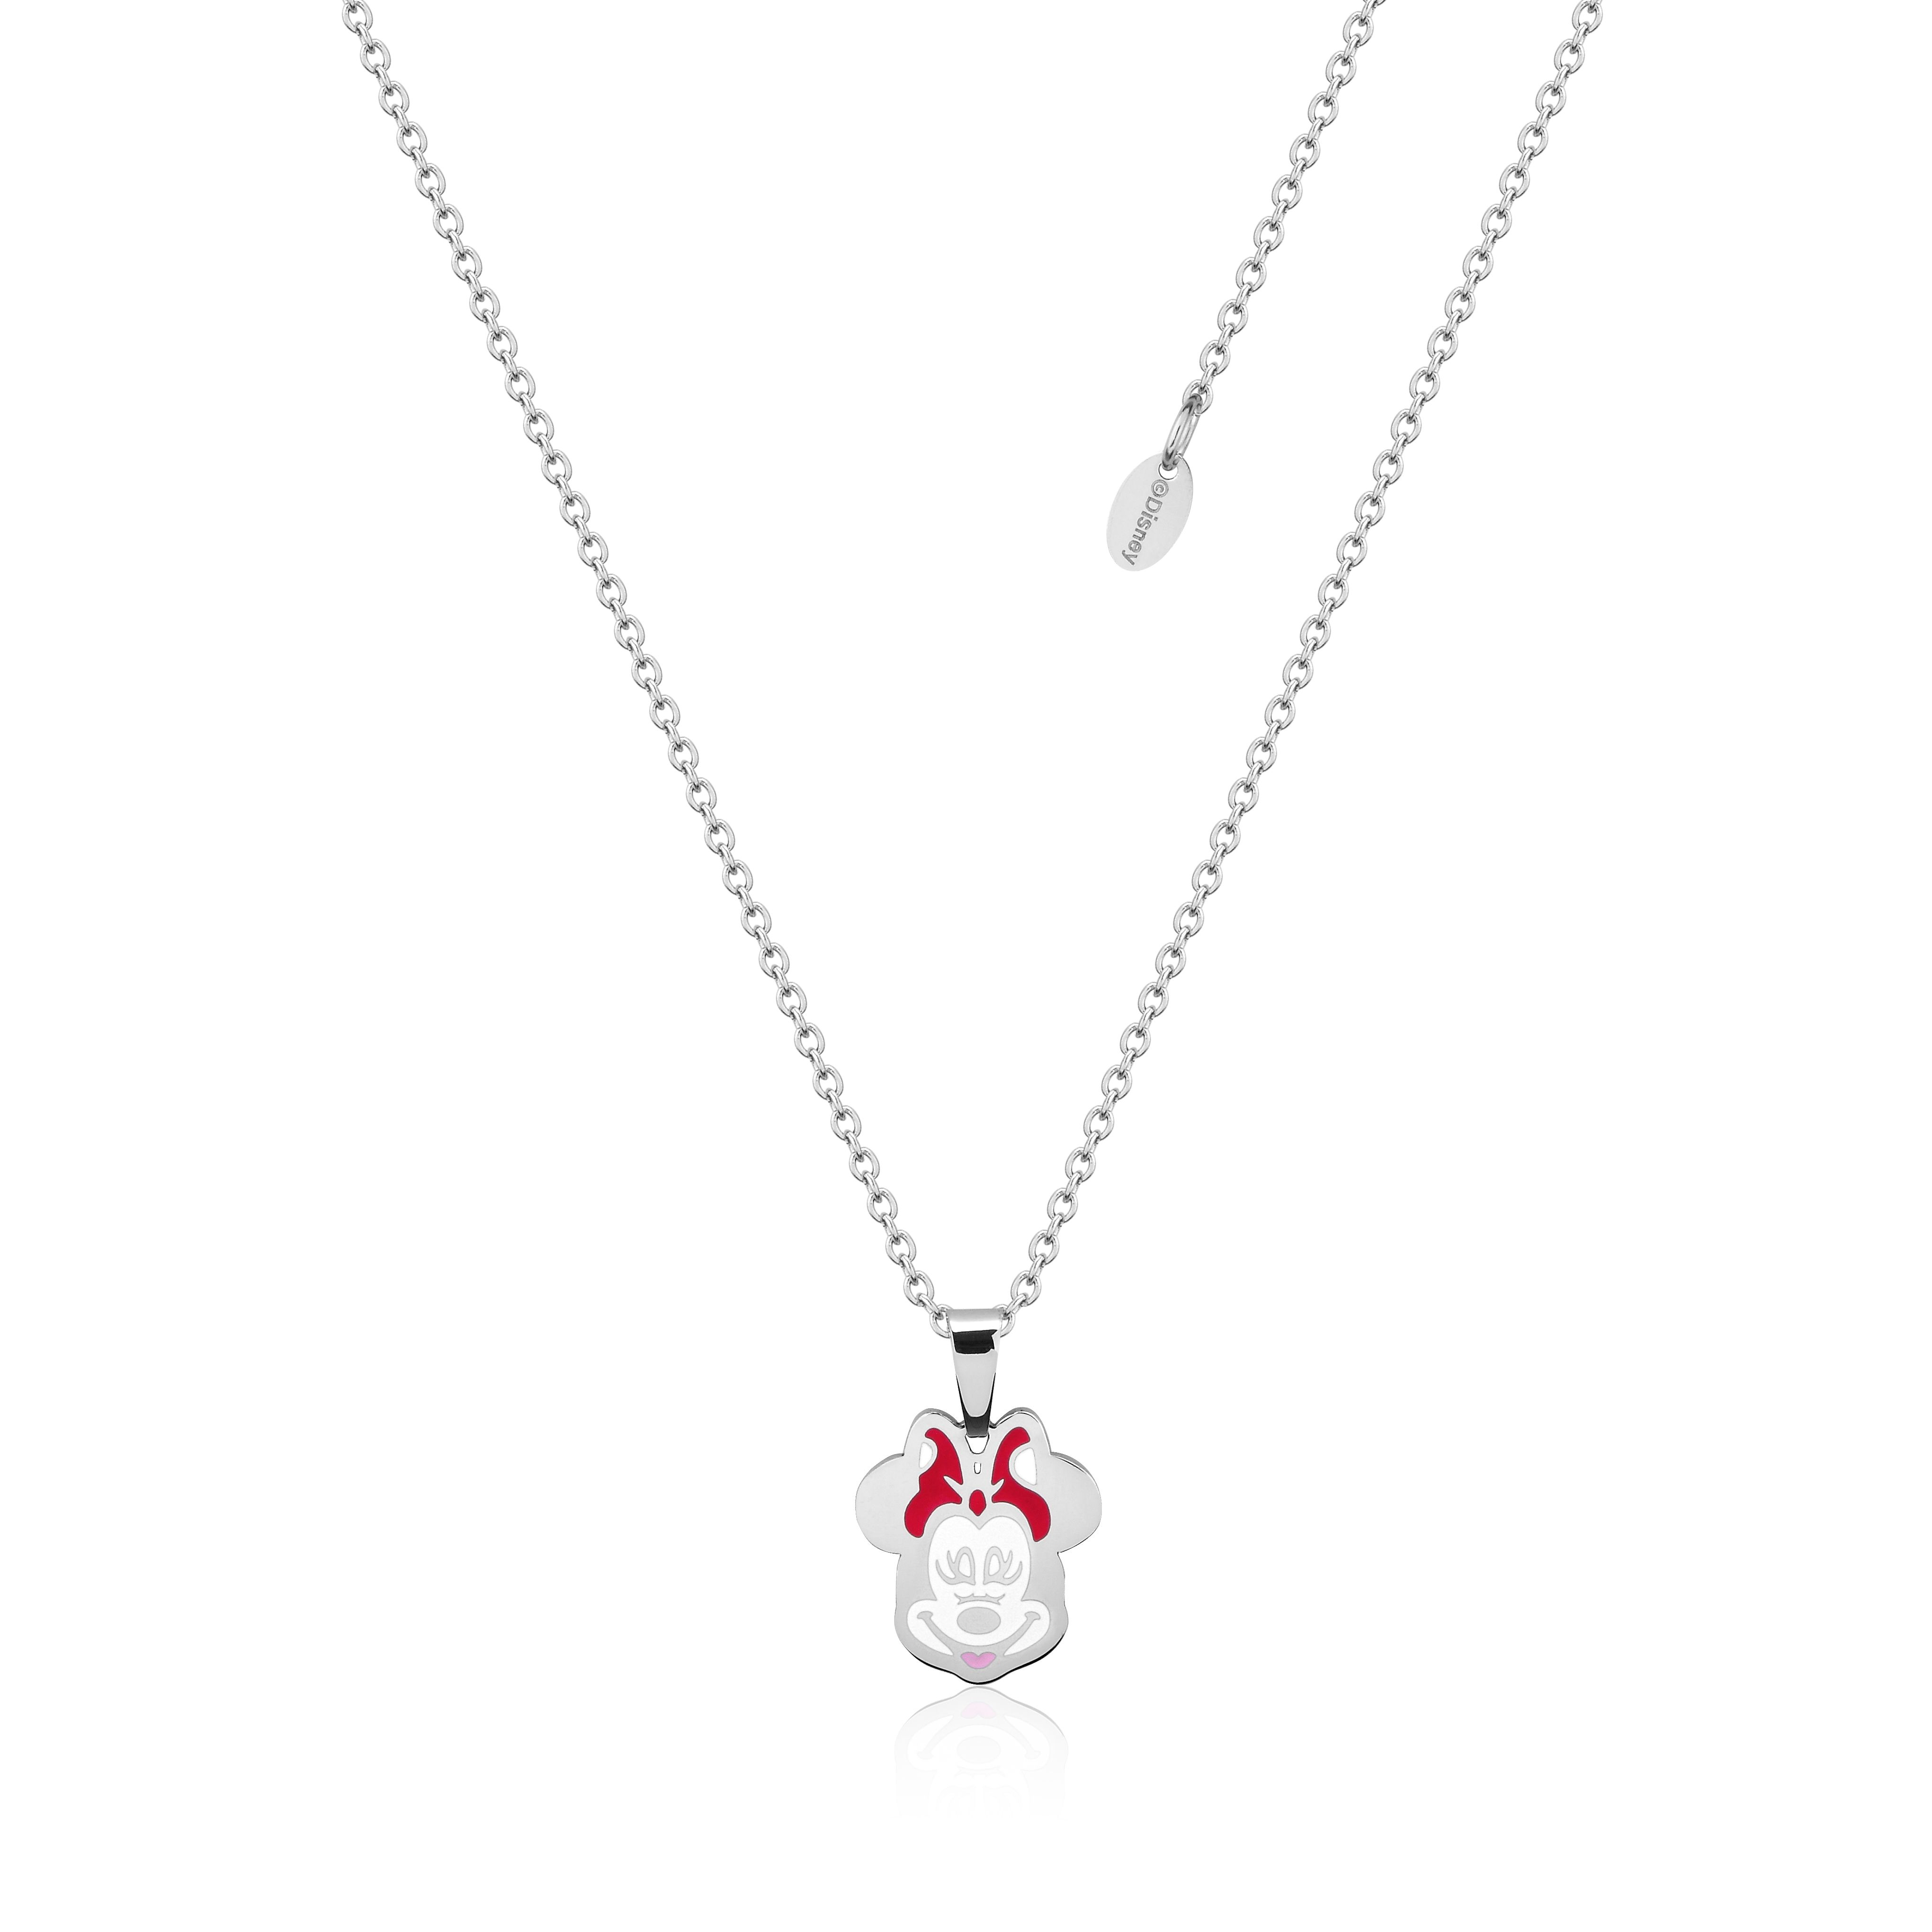 DISNEY Stainless Steel 47cm Animated Minnie Mouse Pendant on Chain